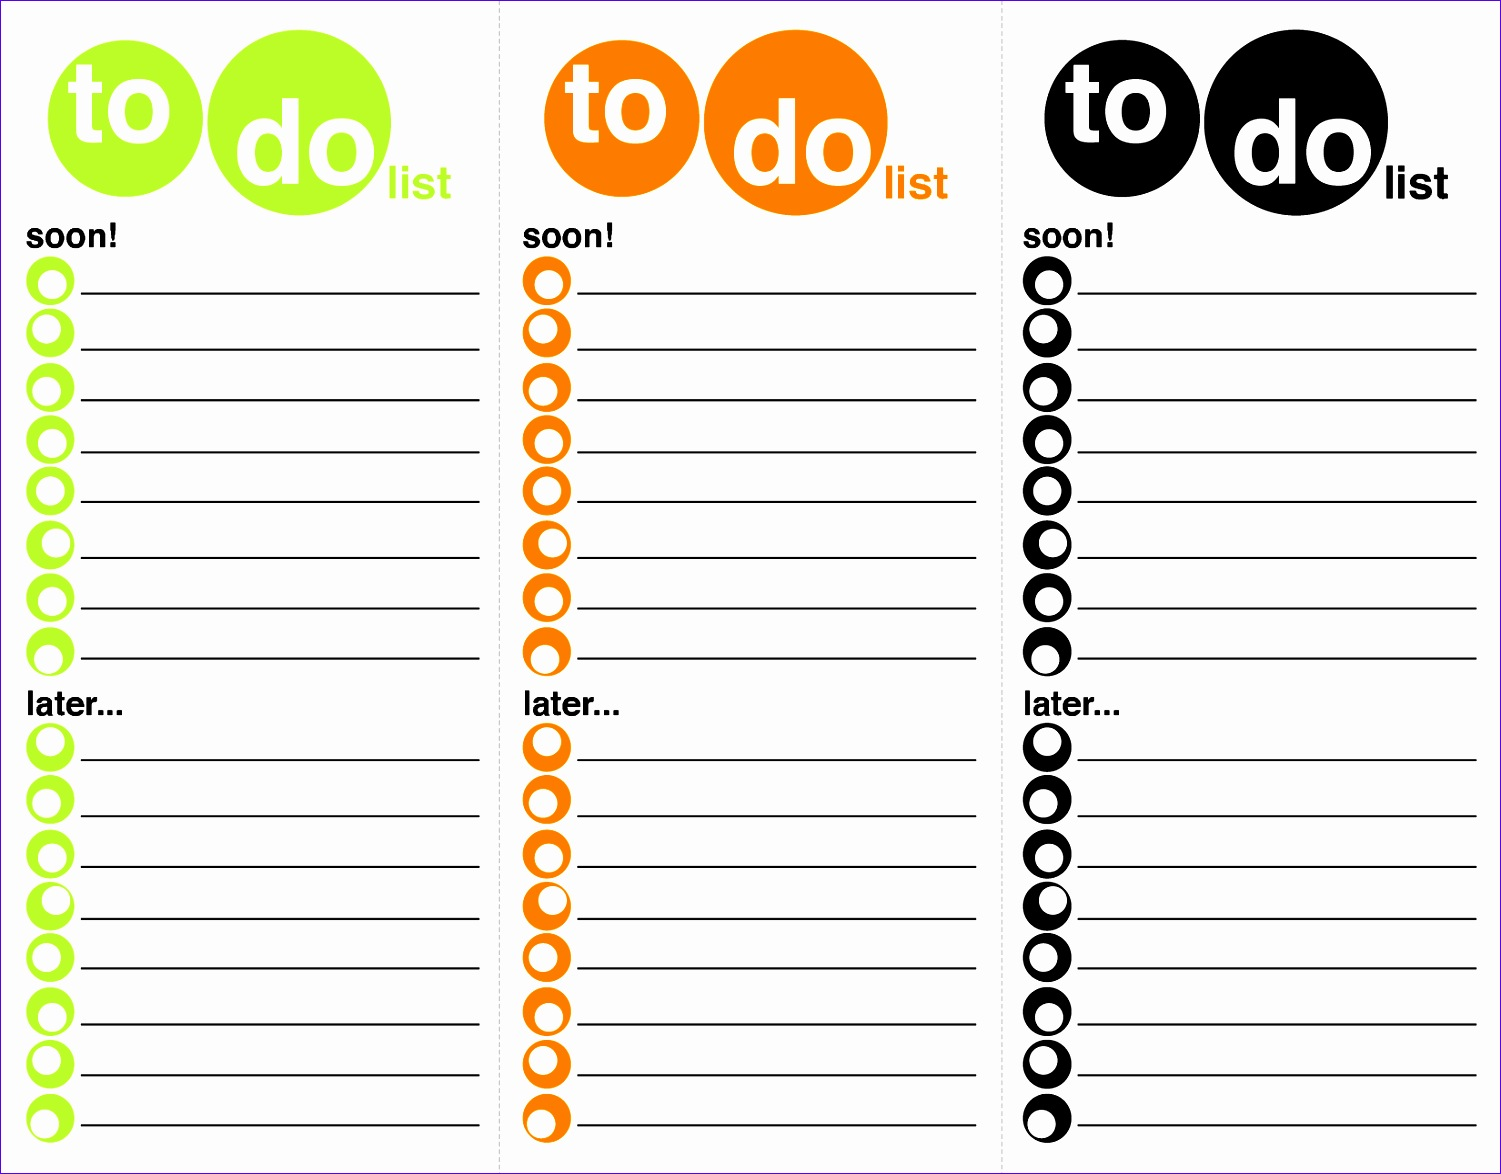 to do list template 6 15011174